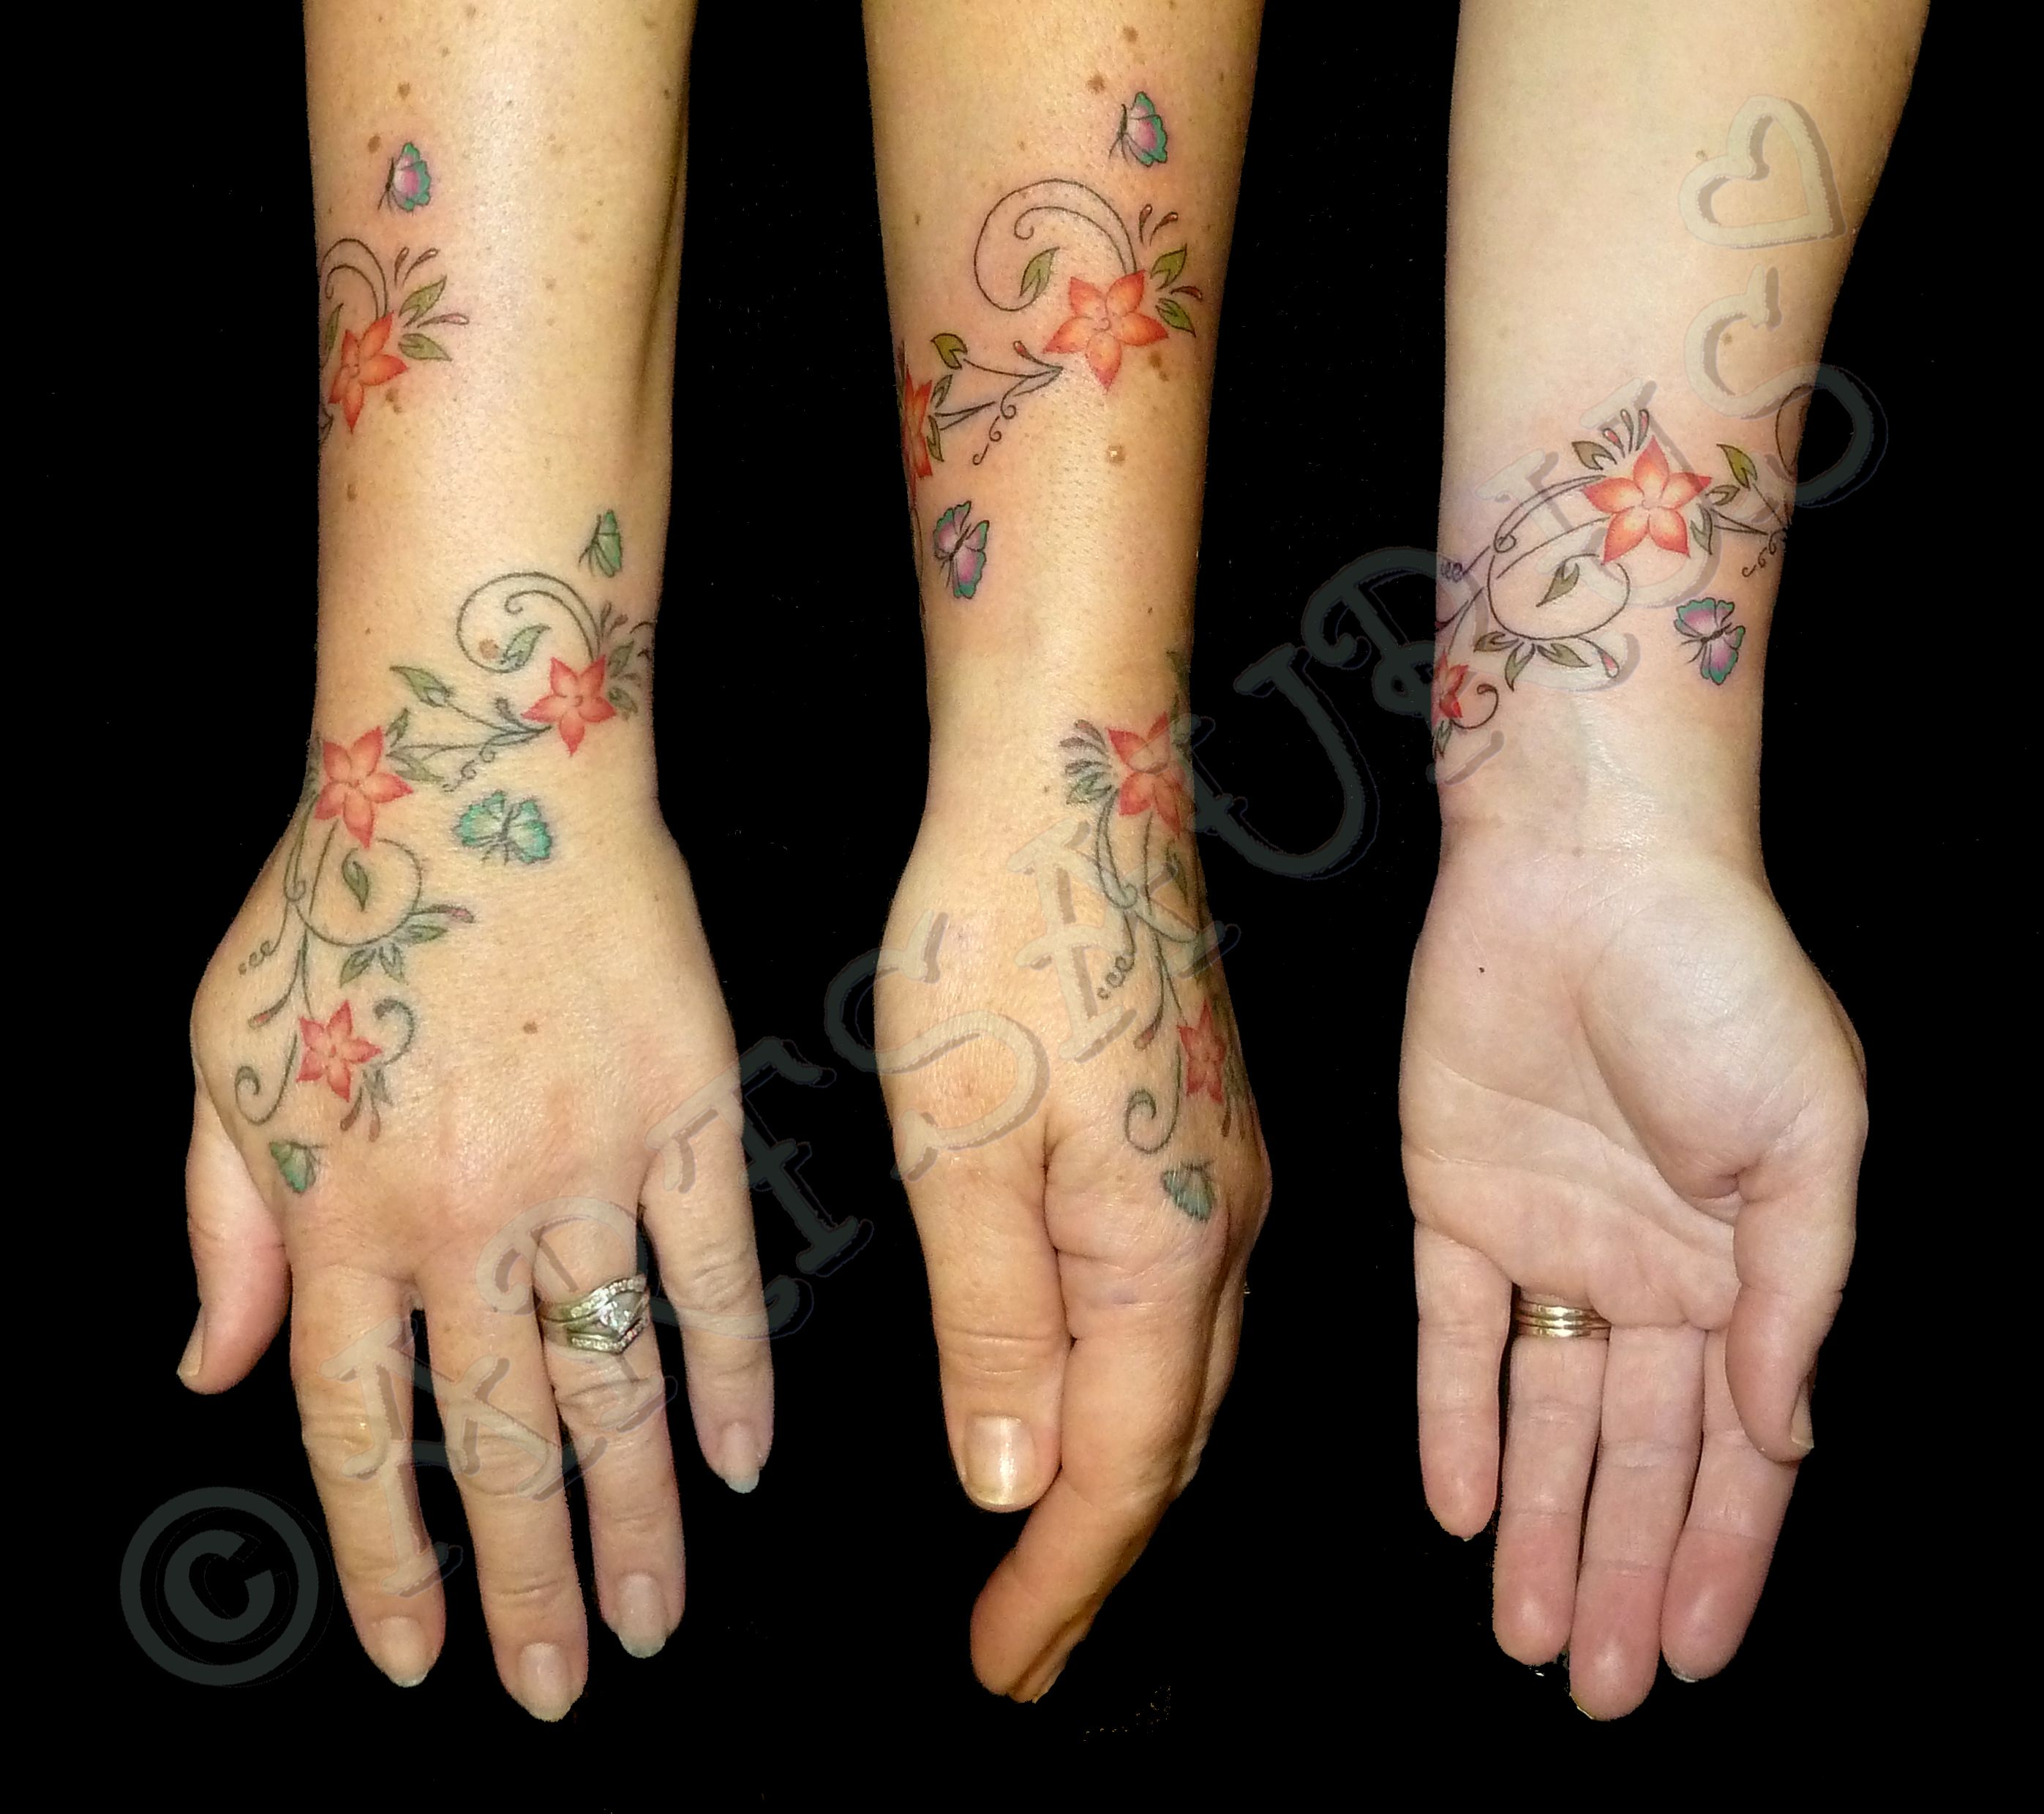 Wrist Vine Tattoos Flower: Wrist Vine Bracelet Tattoo - Google Search